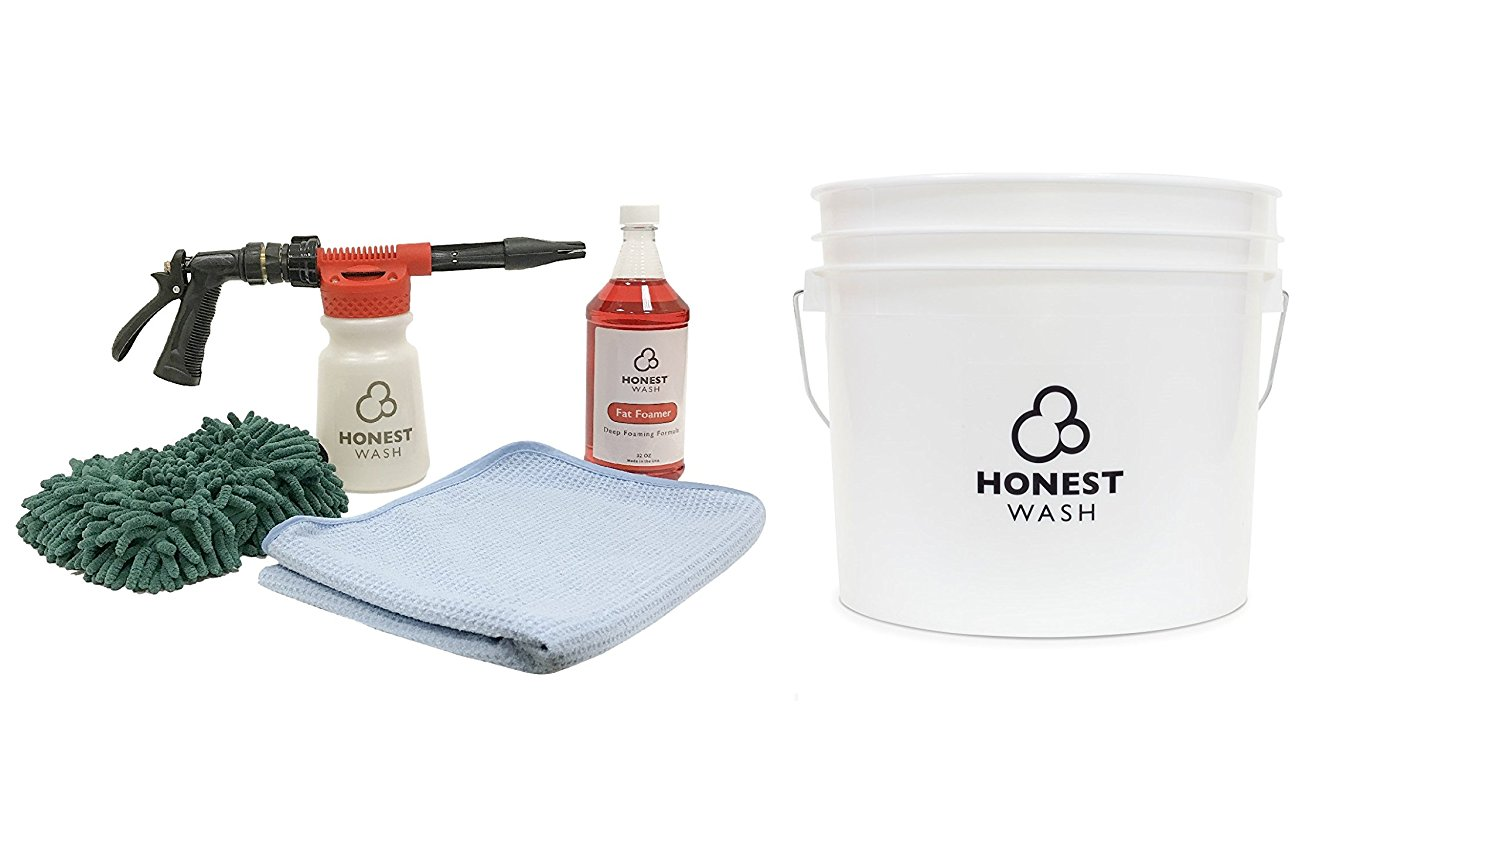 Honest Wash Deluxe Foam Sprayer Kit - Everything You Need to Clean Your Car or Truck - Wash Mitt, Foam Sprayer, Foaming Car Wash Soap, Drying Towel